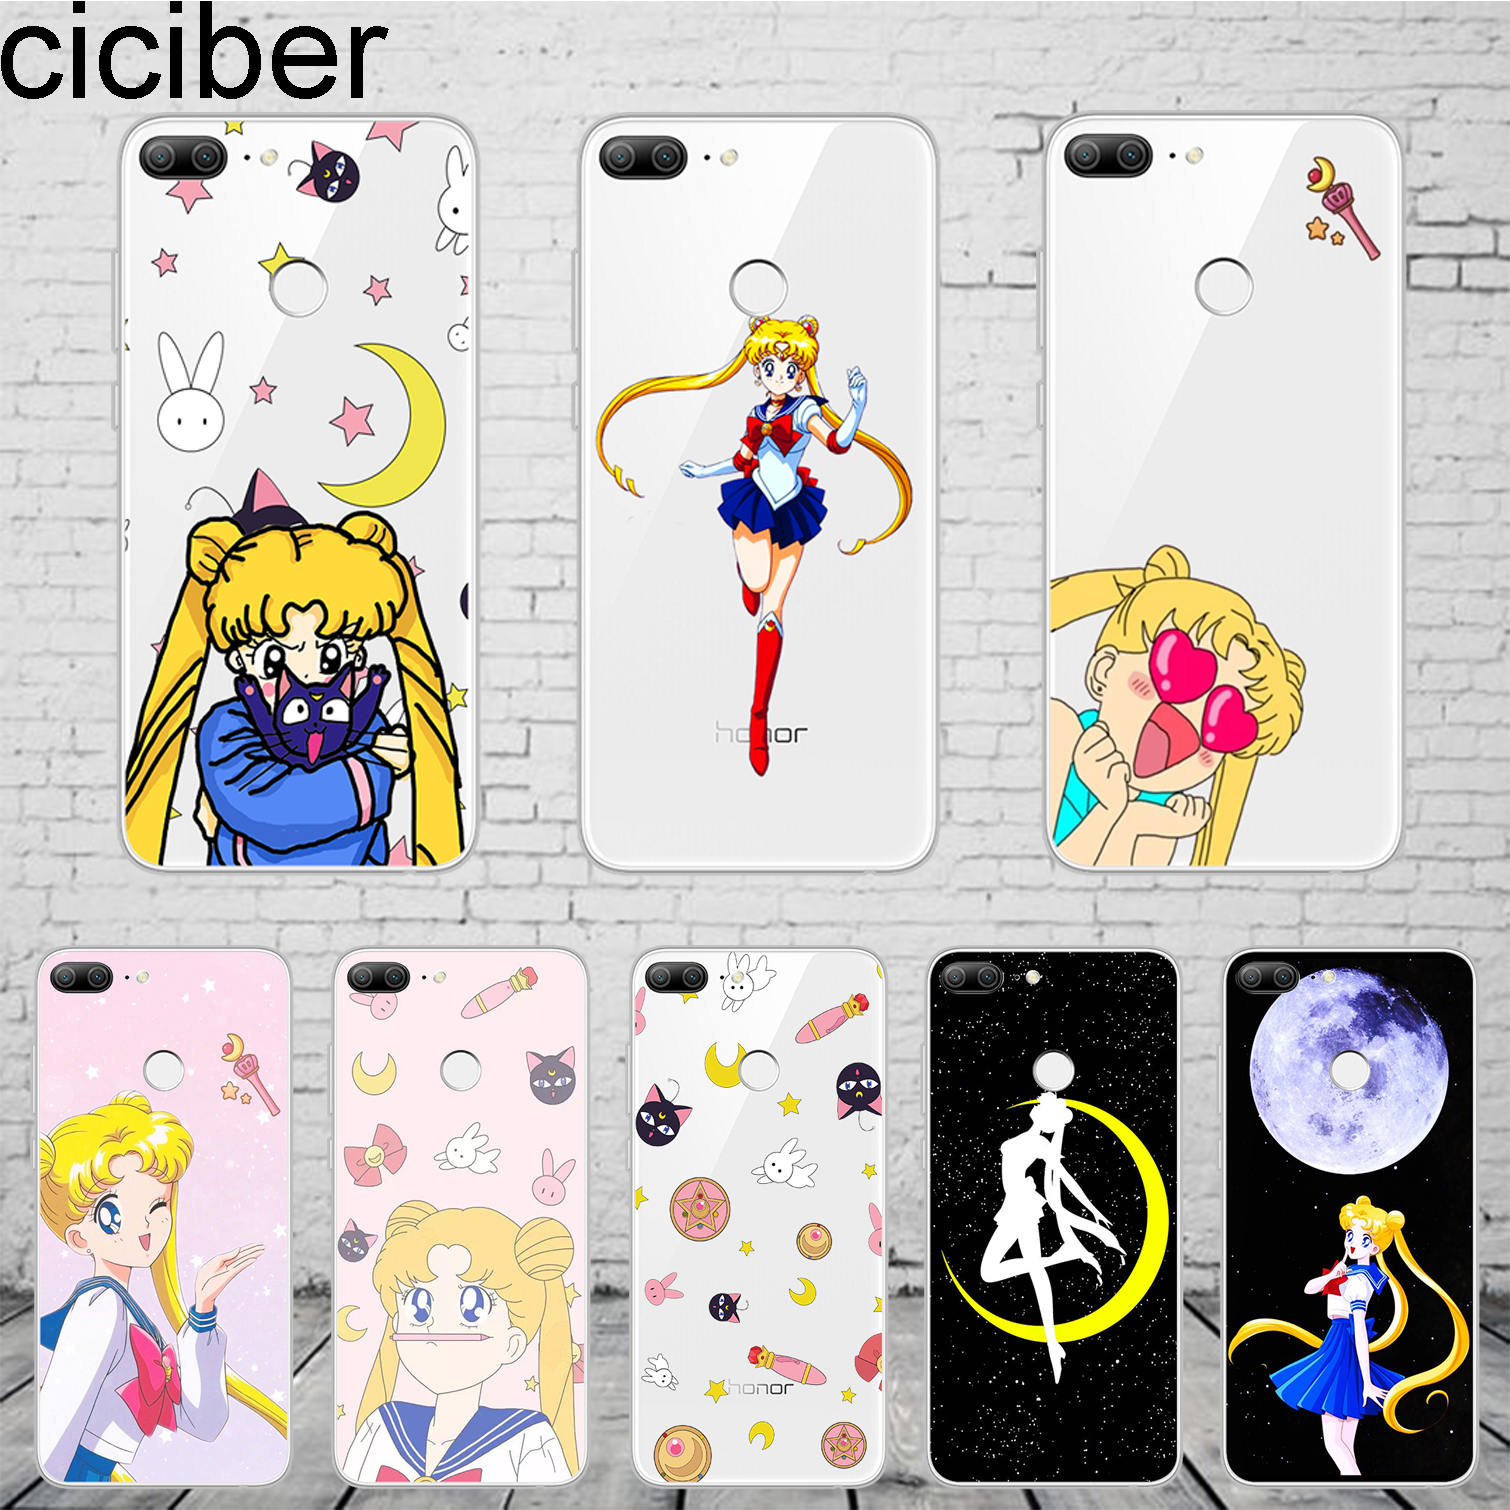 ciciber Anime Girl Sailor Moon For Honor 10 9 8 Pro Lite X C Play Phone <font><b>Case</b></font> For <font><b>Y</b></font> 9 7 <font><b>6</b></font> 5 <font><b>Prime</b></font> Pro 2017 <font><b>2018</b></font> 2019 Coque TPU image